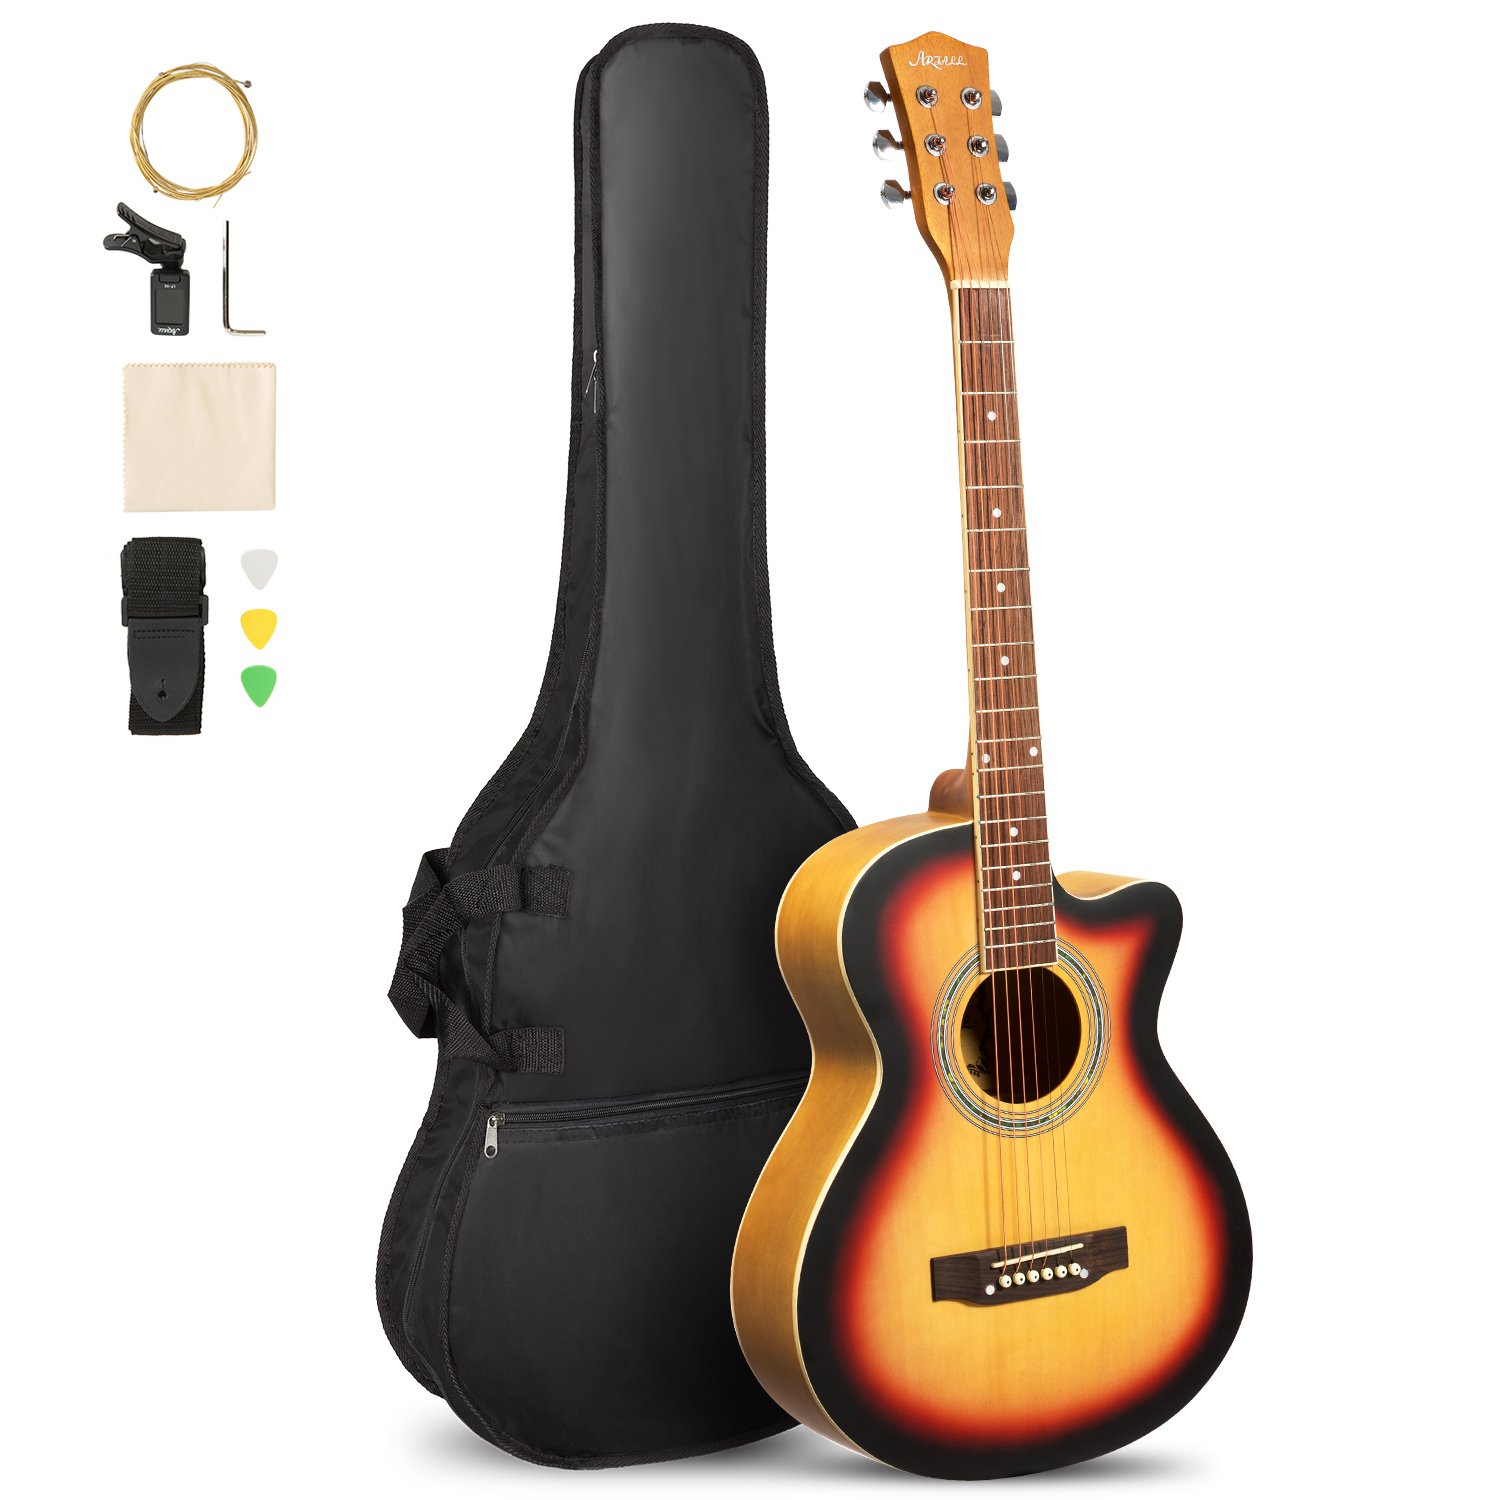 ARTALL 39 Inch Handmade Solid Wood Acoustic Cutaway Guitar Beginner Kit